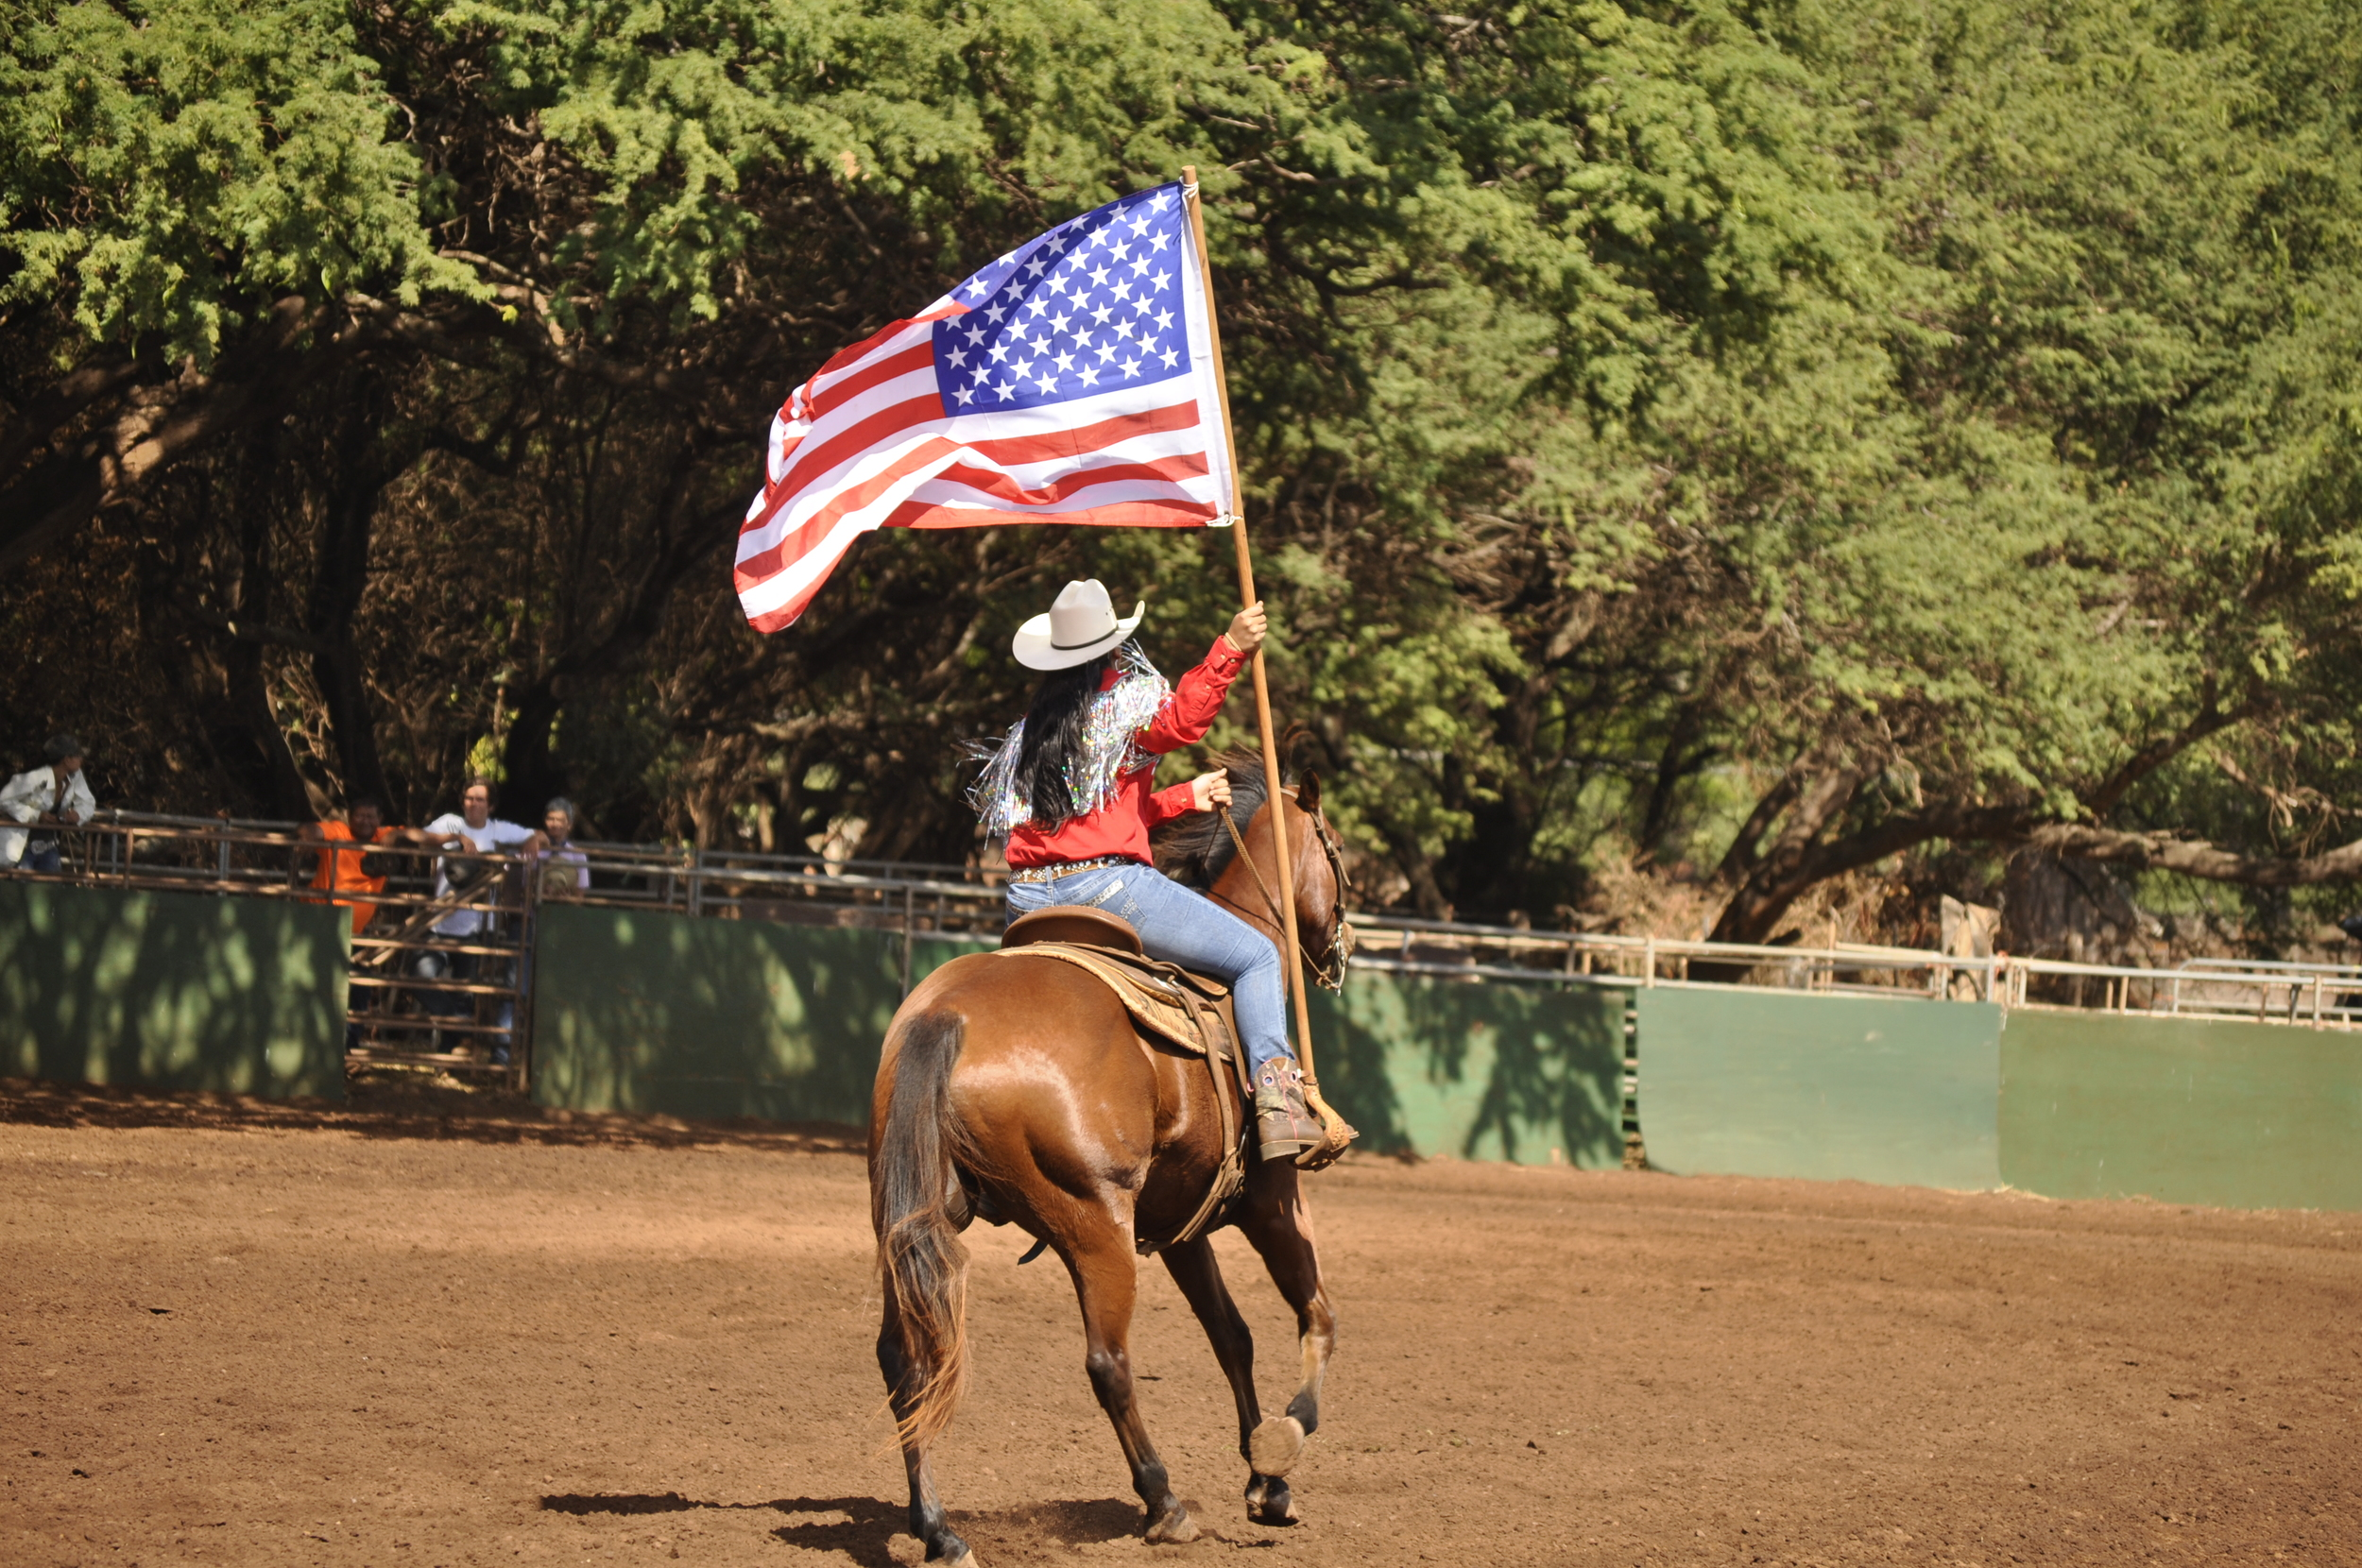 No Stampede is complete without the flying of Old Glory.